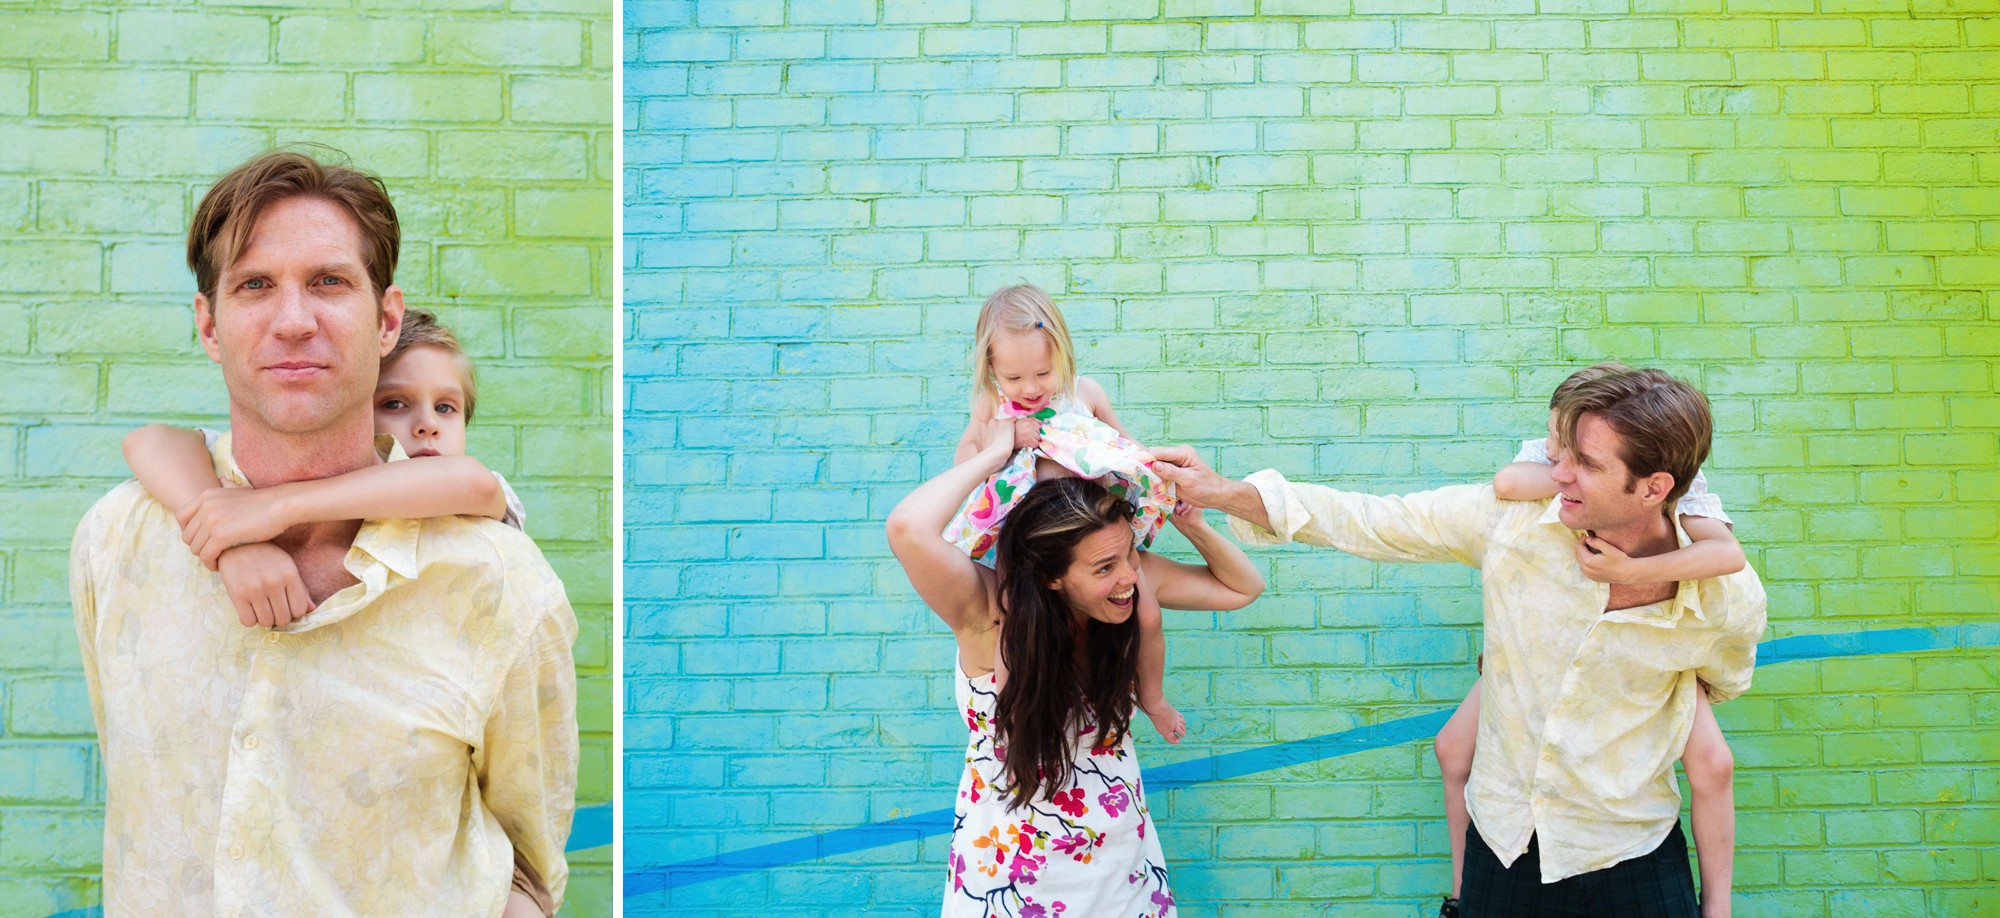 Dumbo Mural Art used as backdrop for lifestyle Family photography session